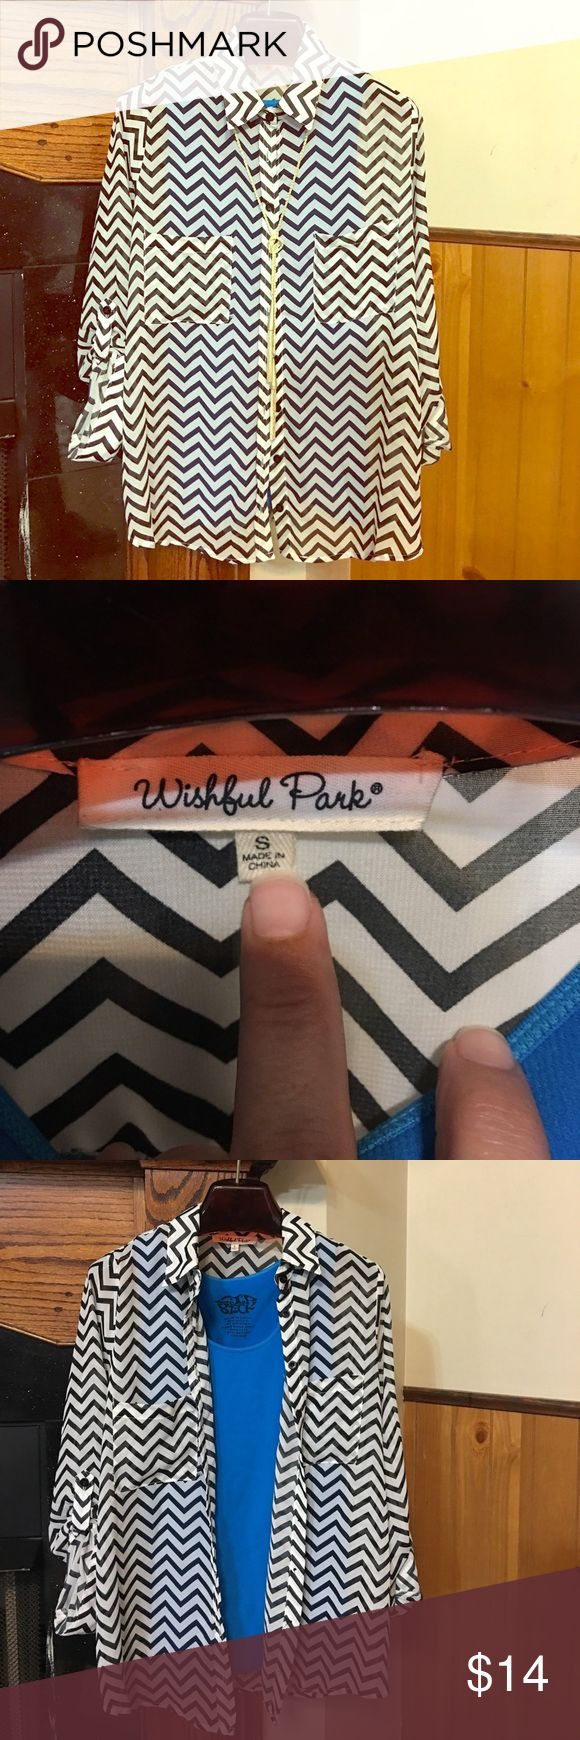 Wishful Park black & white chevron blouse Super cute, black & white, chevron blouse. Can be worn layered ❤️ absolutely ❤️layered look 😍. Bundle to save. Smoke free home. Wishful Park Tops Blouses